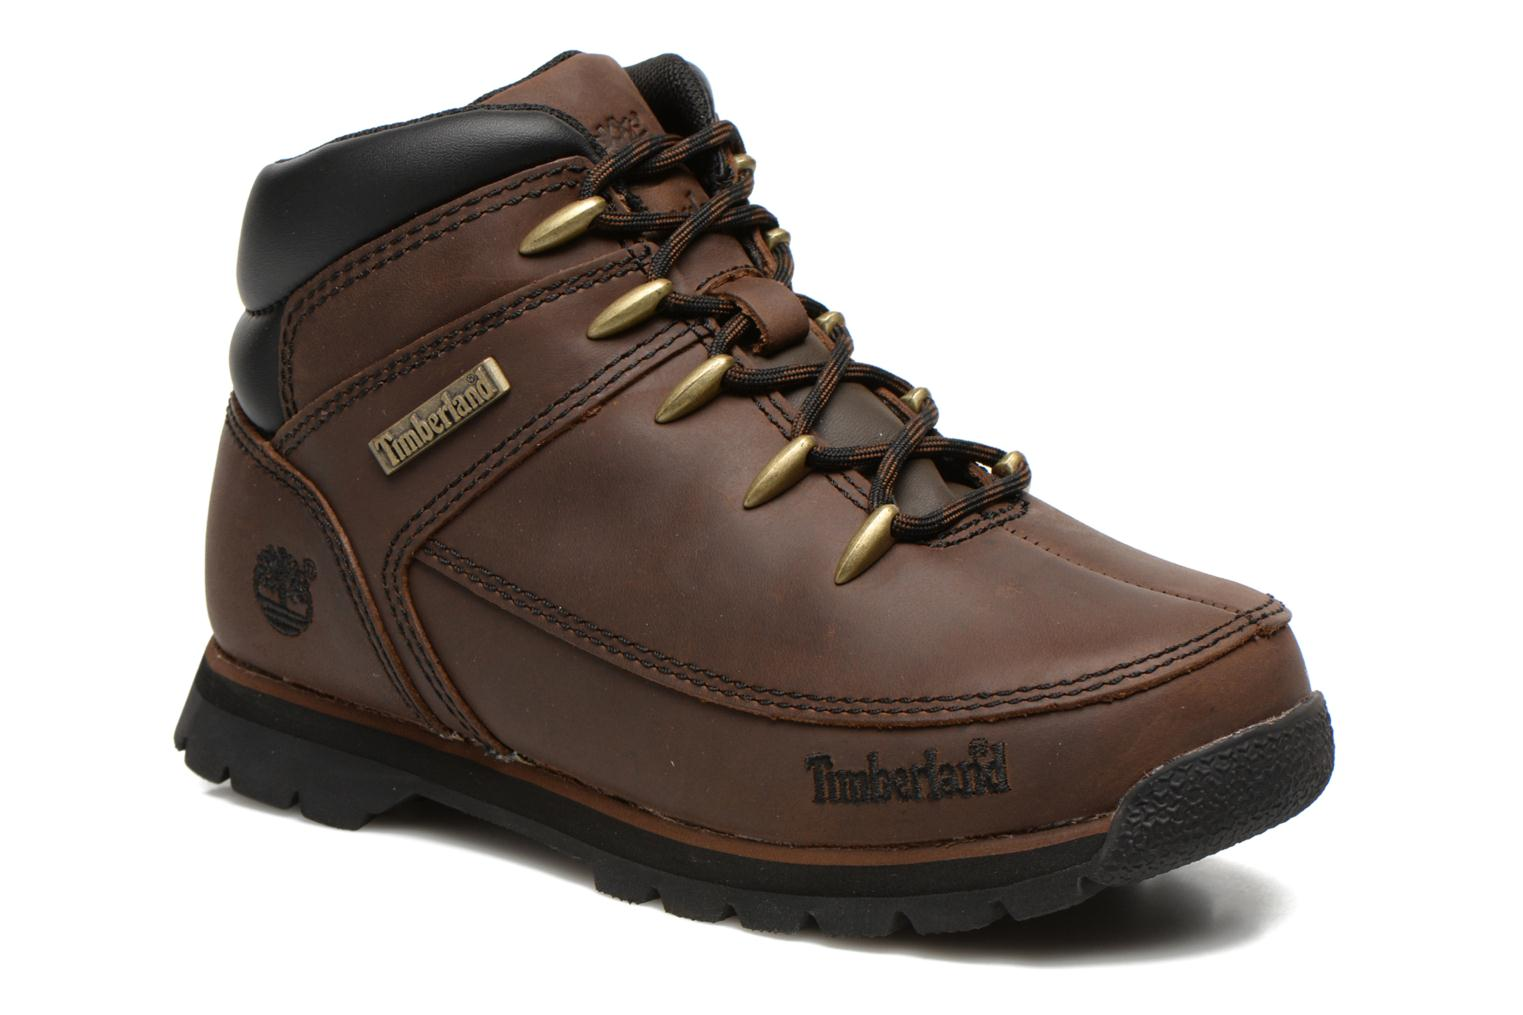 Bottines et boots Timberland Euro sprint Kids Marron vue détail/paire